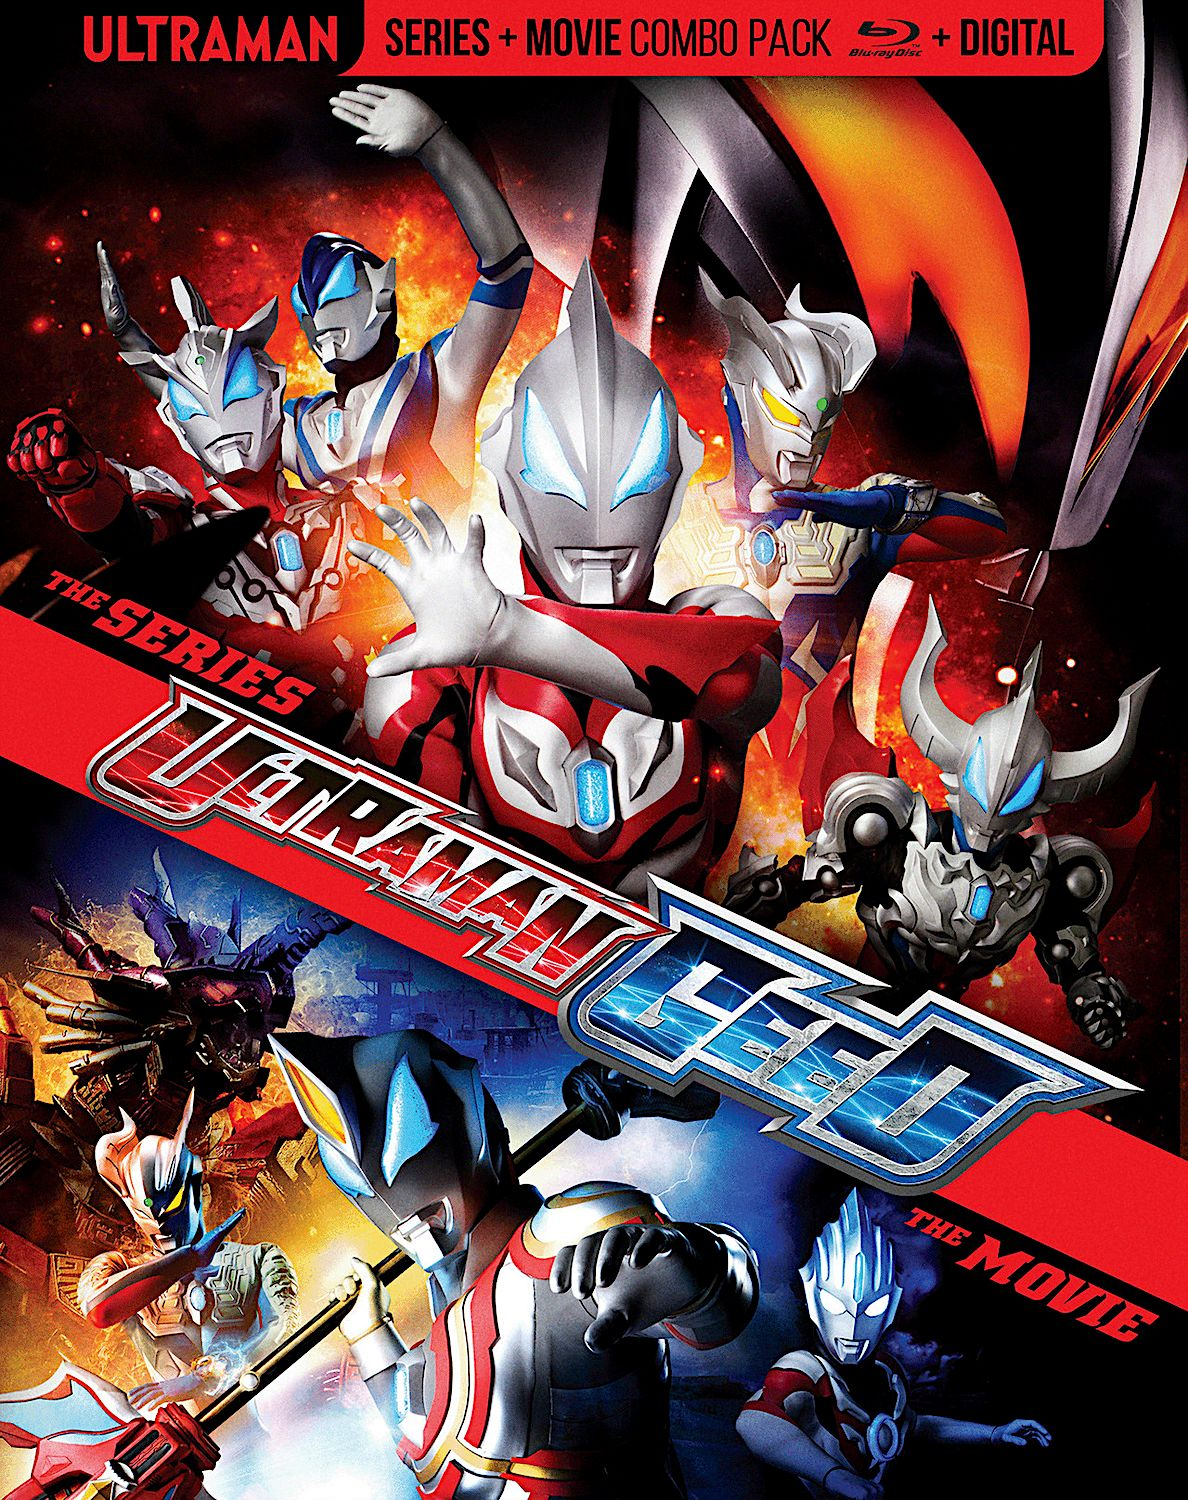 ULTRAMAN GEED THE MOVIE BLURAY (MILL CREEK) Cover